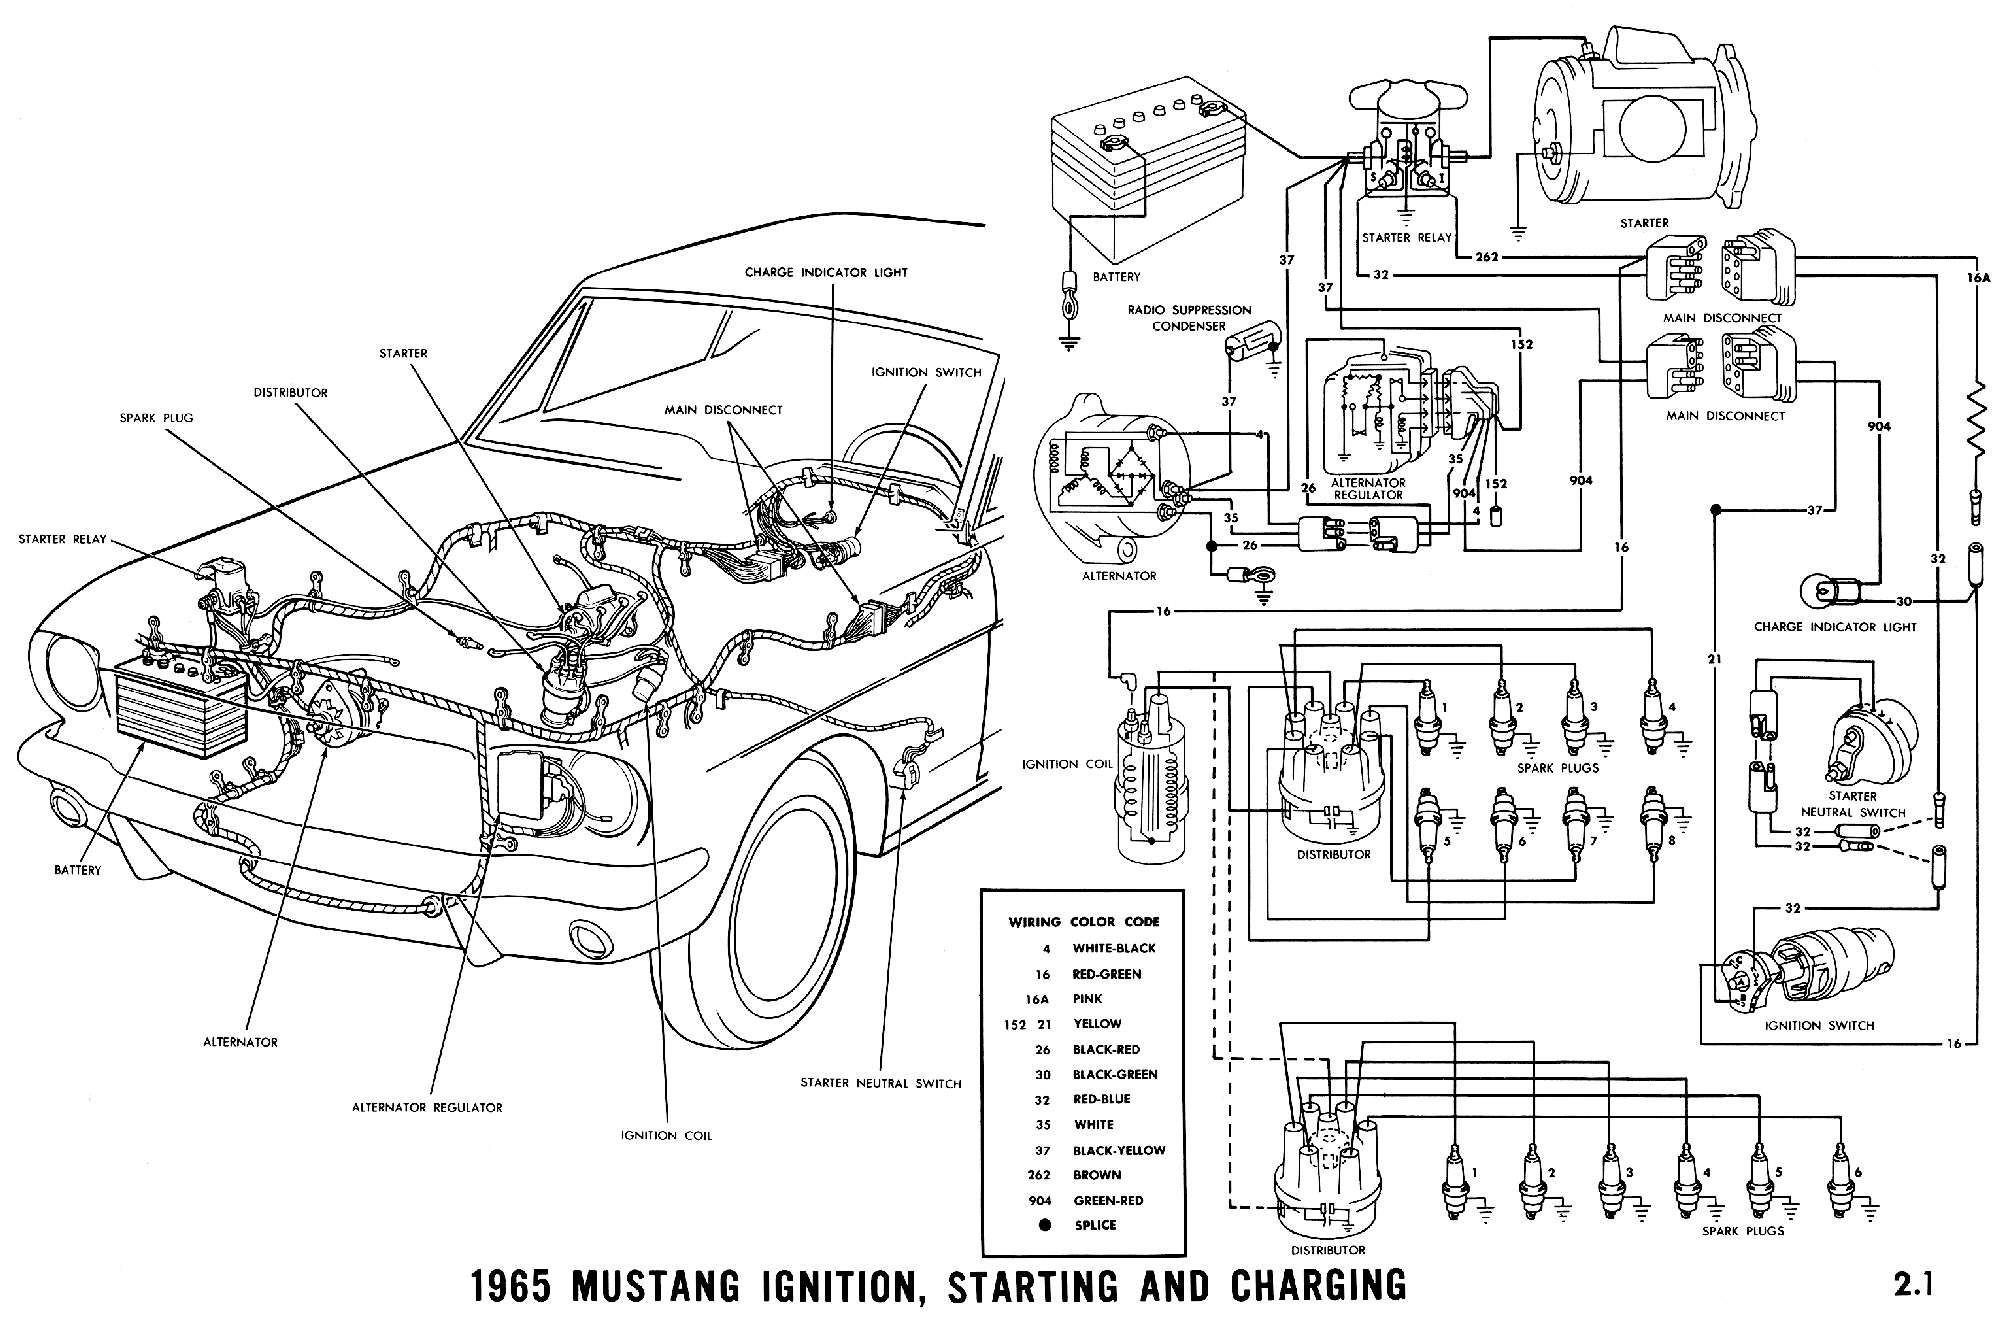 Enjoyable 1967 Mustang Wiring Harness Wiring Diagram Letkol Mohammedshrine Wiring Cloud Letkolmohammedshrineorg